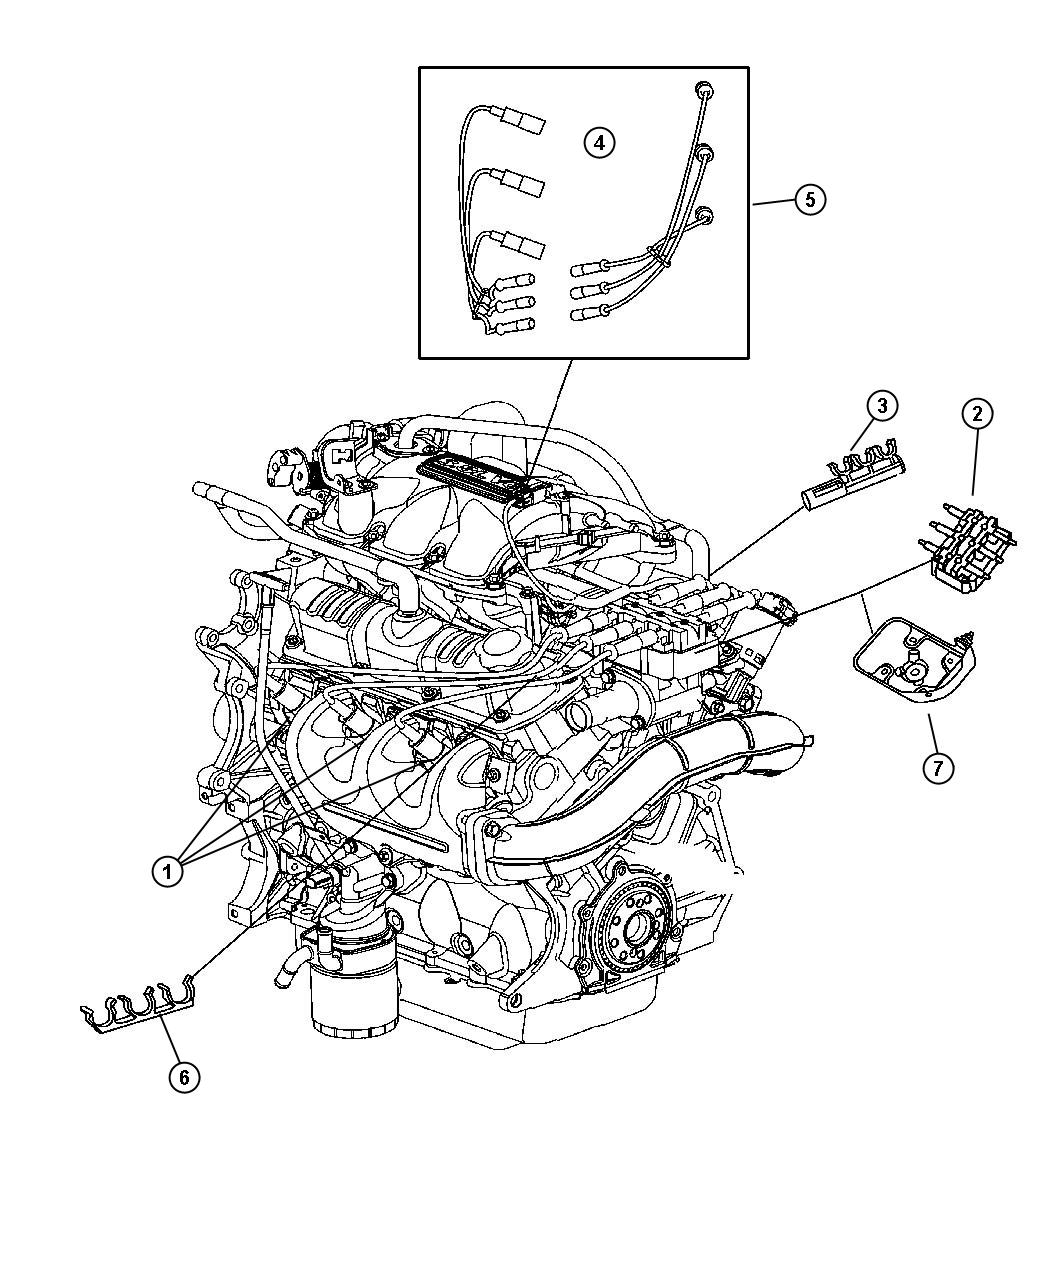 chrysler pacifica ignition wire diagram